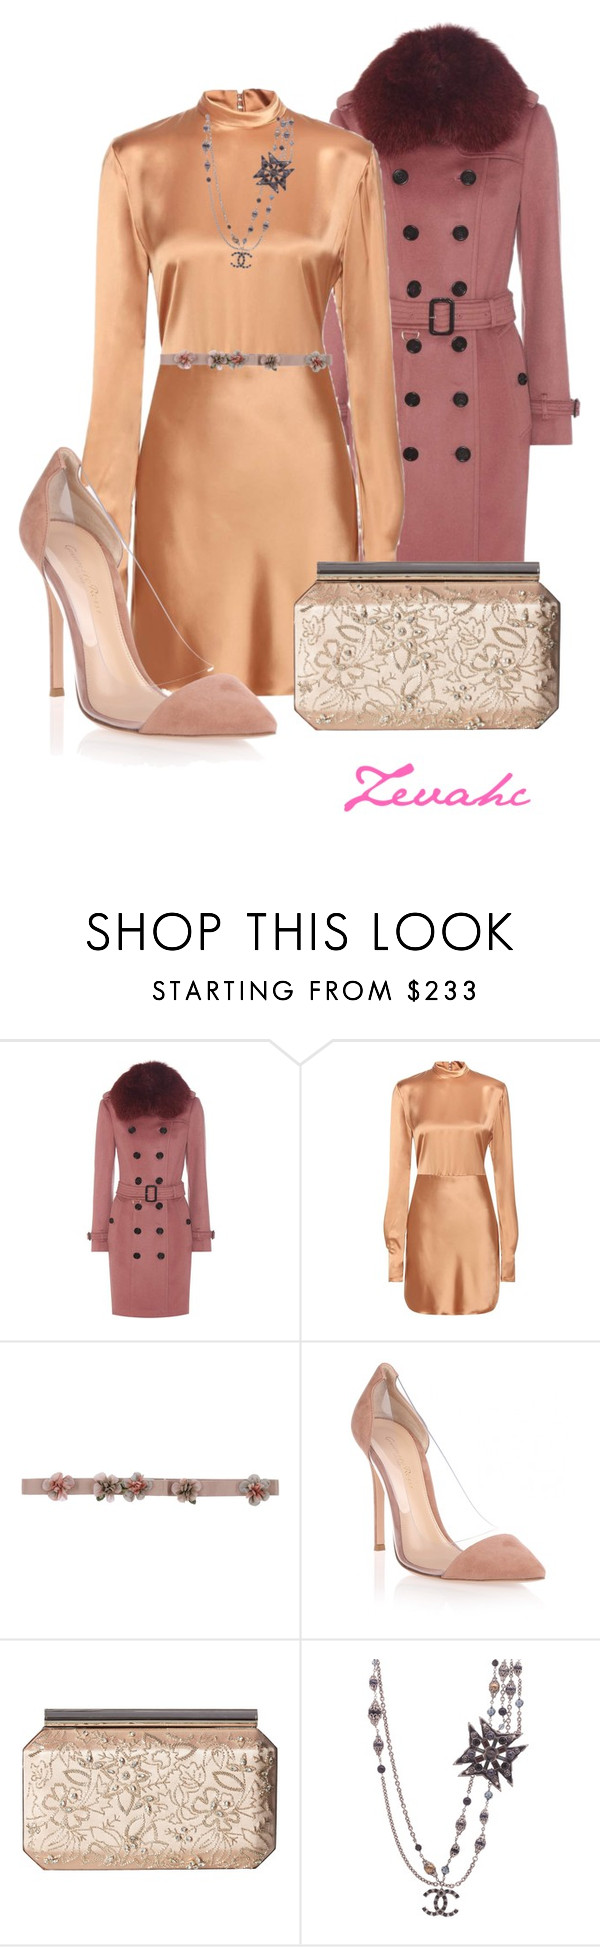 """""""Let's go out"""" by zevahcmary ❤ liked on Polyvore featuring Burberry, Acne Studios, Alberta Ferretti, Gianvito Rossi, Oscar de la Renta and Chanel"""